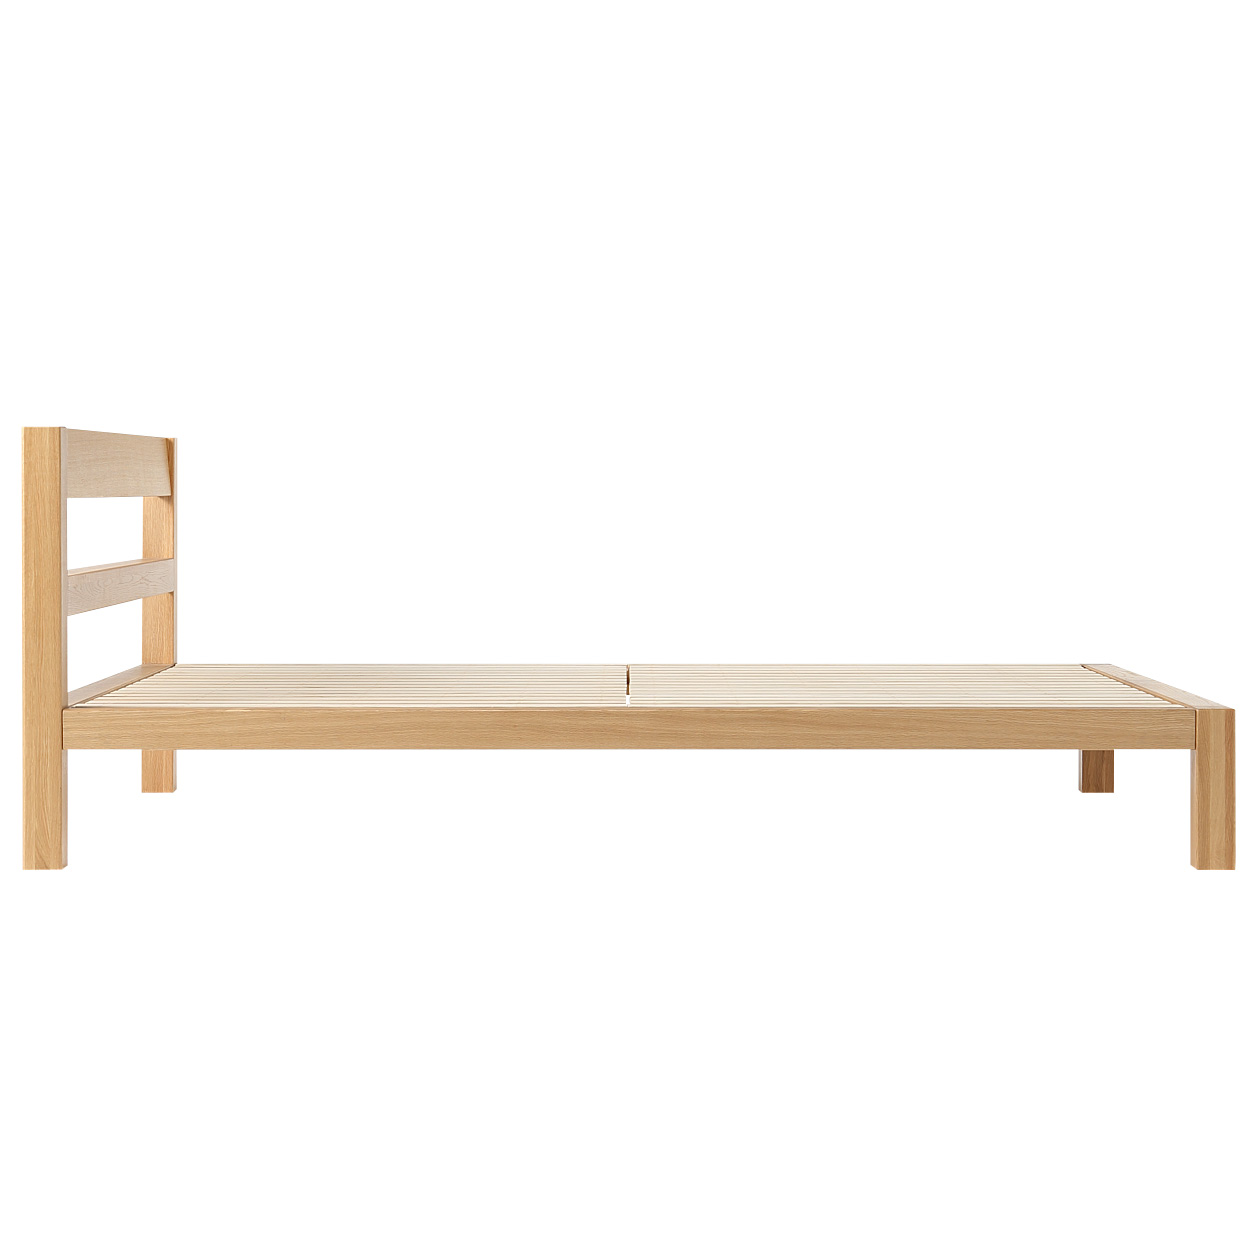 sturdy self assembly oak wood bed frame which has a basic design that one never feels tired of the